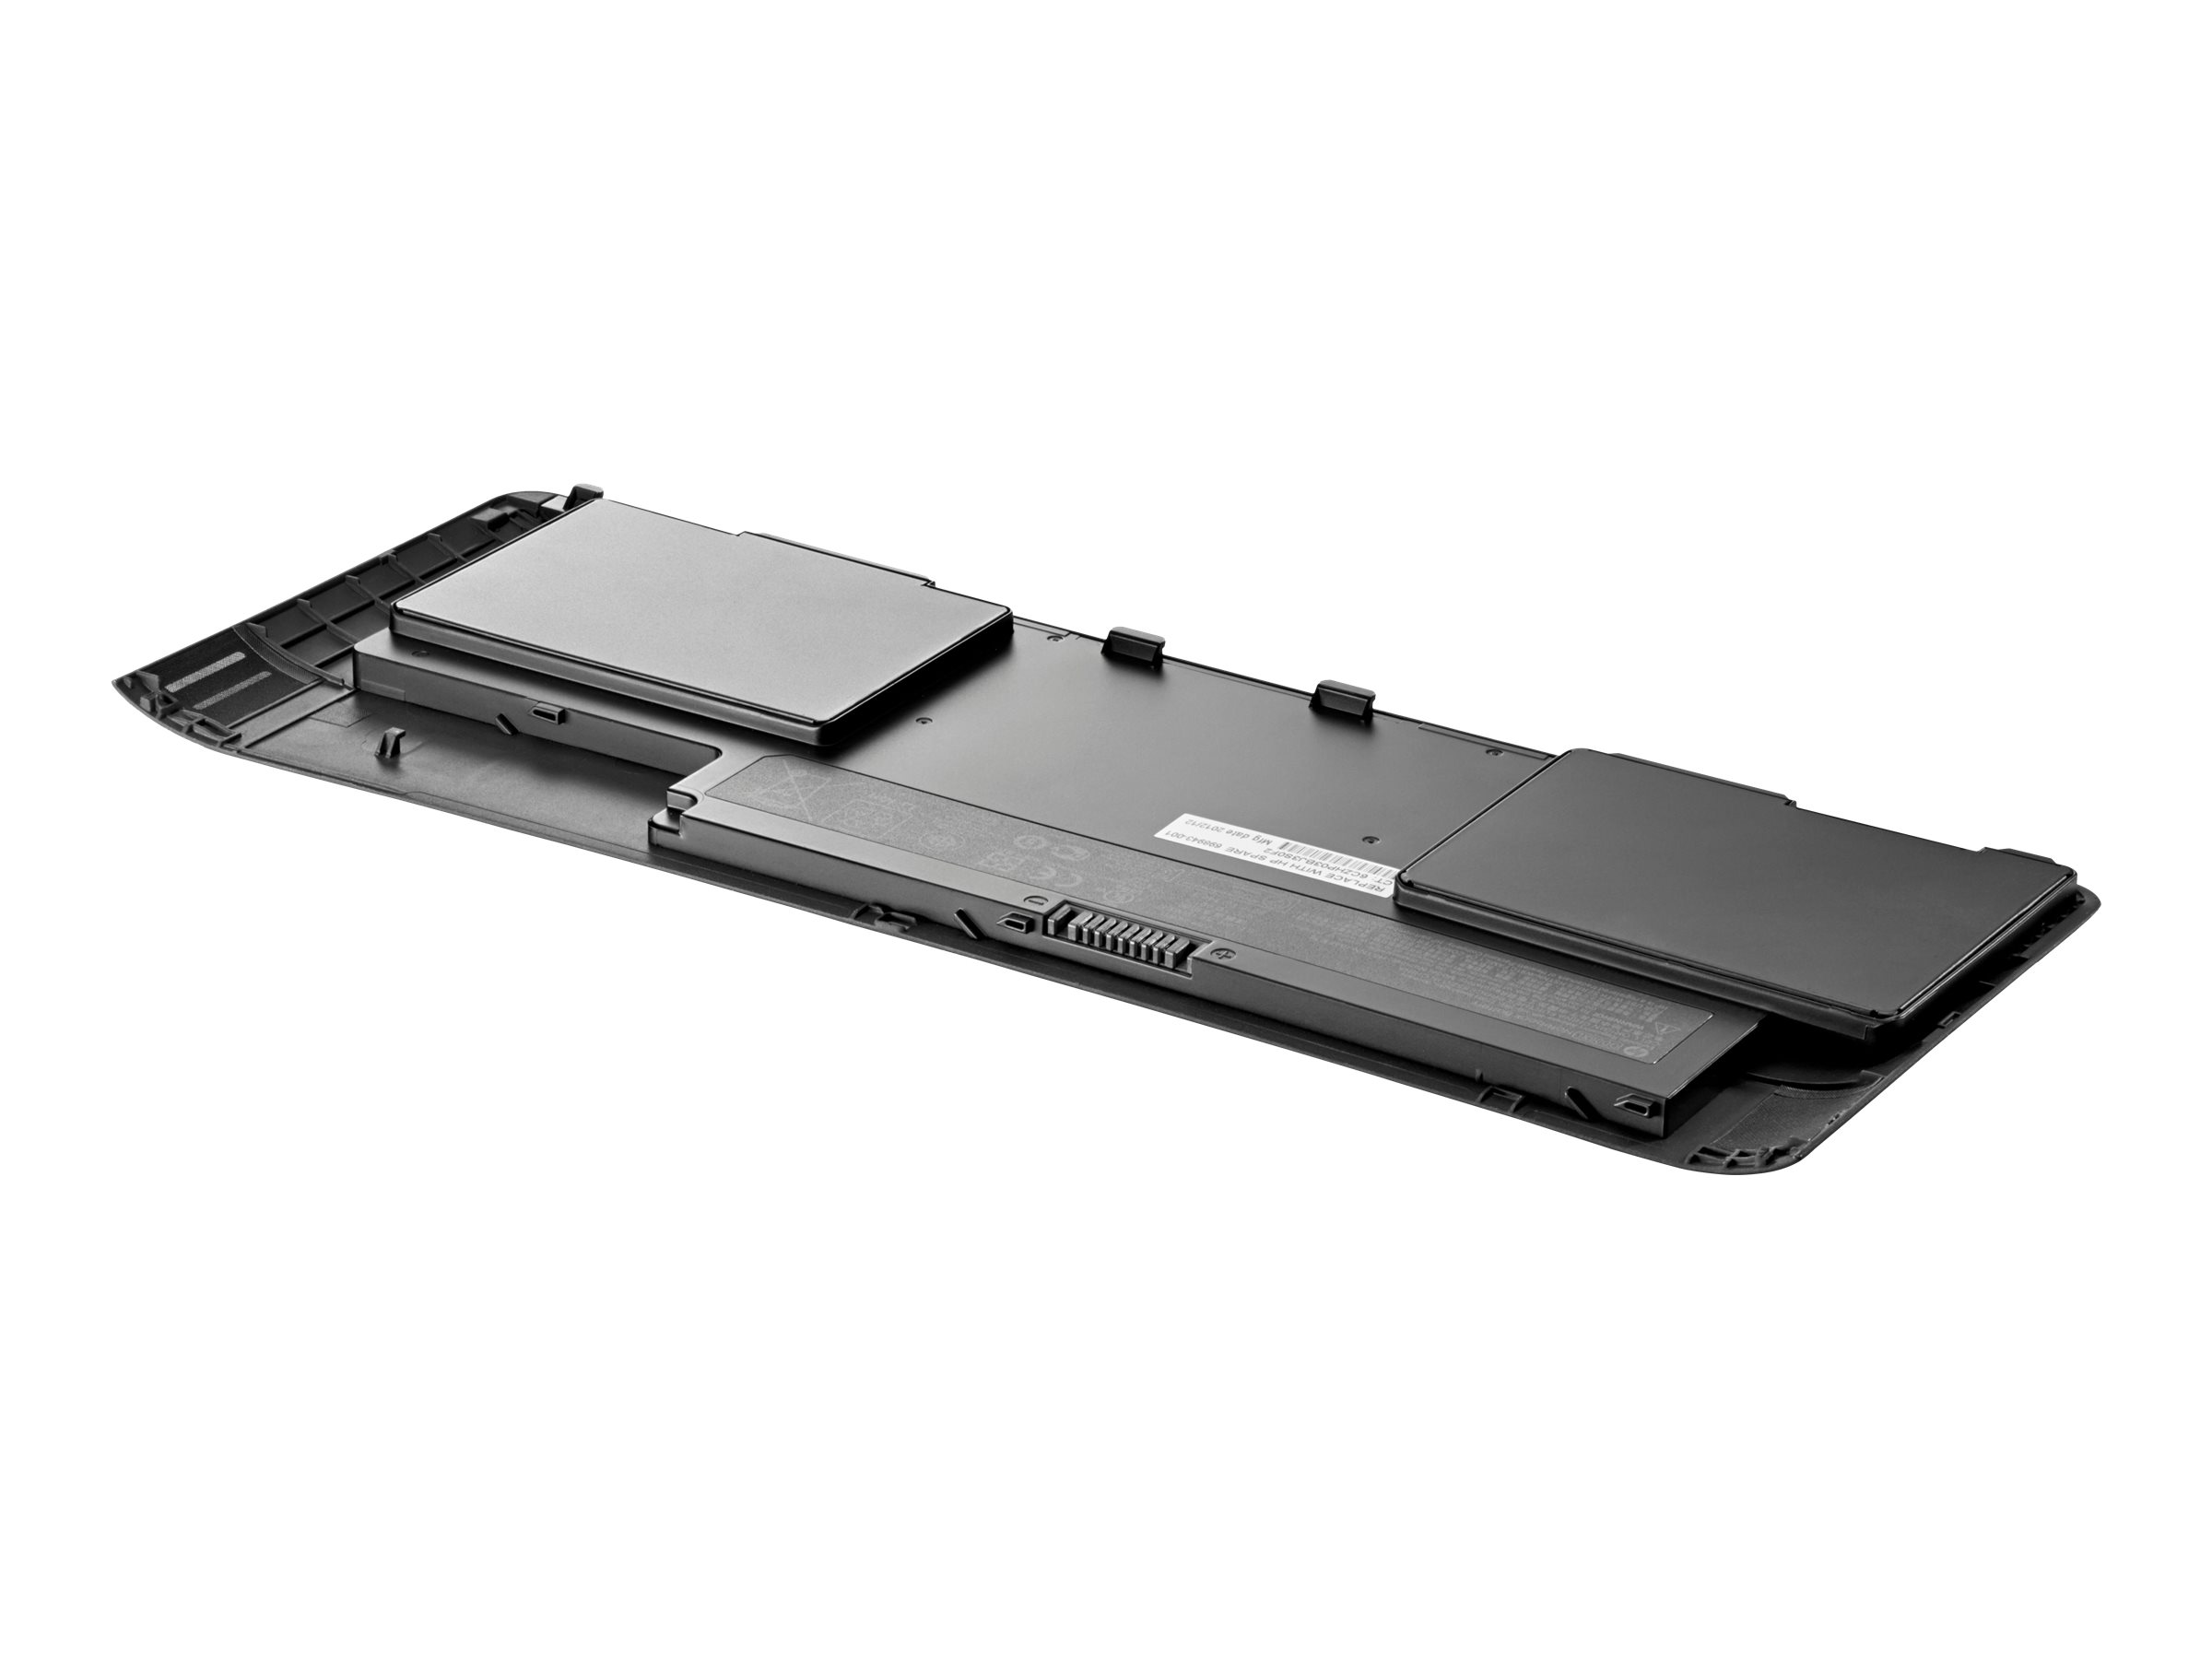 HP OD06XL - Laptop-Batterie (Long Life) - 1 x Lithium-Polymer 6 Zellen 4000 mAh - für EliteBook Revolve 810 G1 Tablet